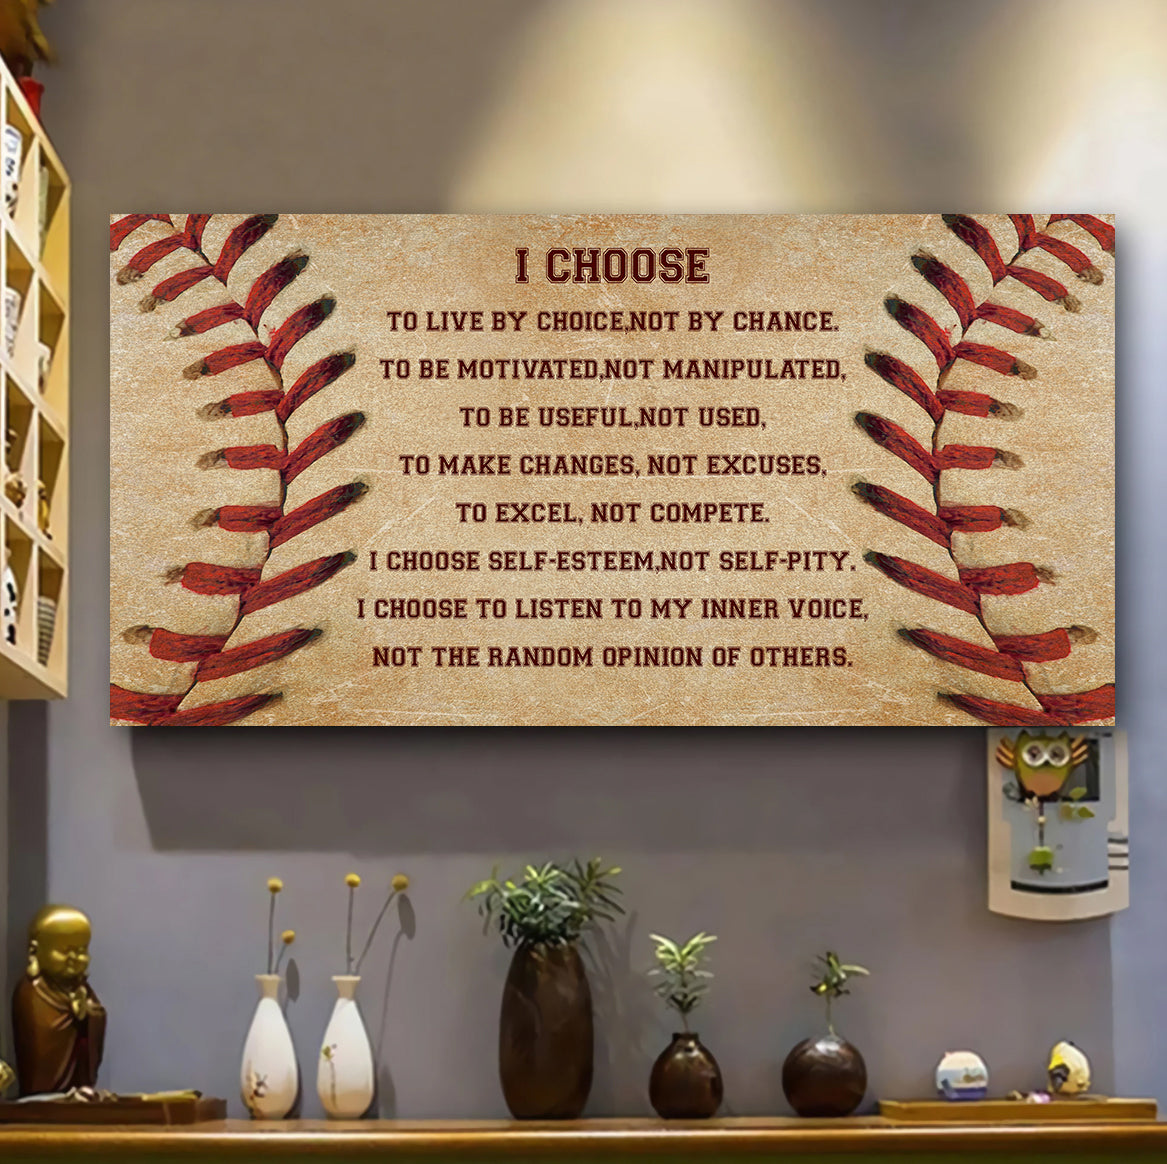 (LP369) Customizable Baseball Poster, canvas - I choose - FREE SHIPPING ON ORDERS OVER 75$